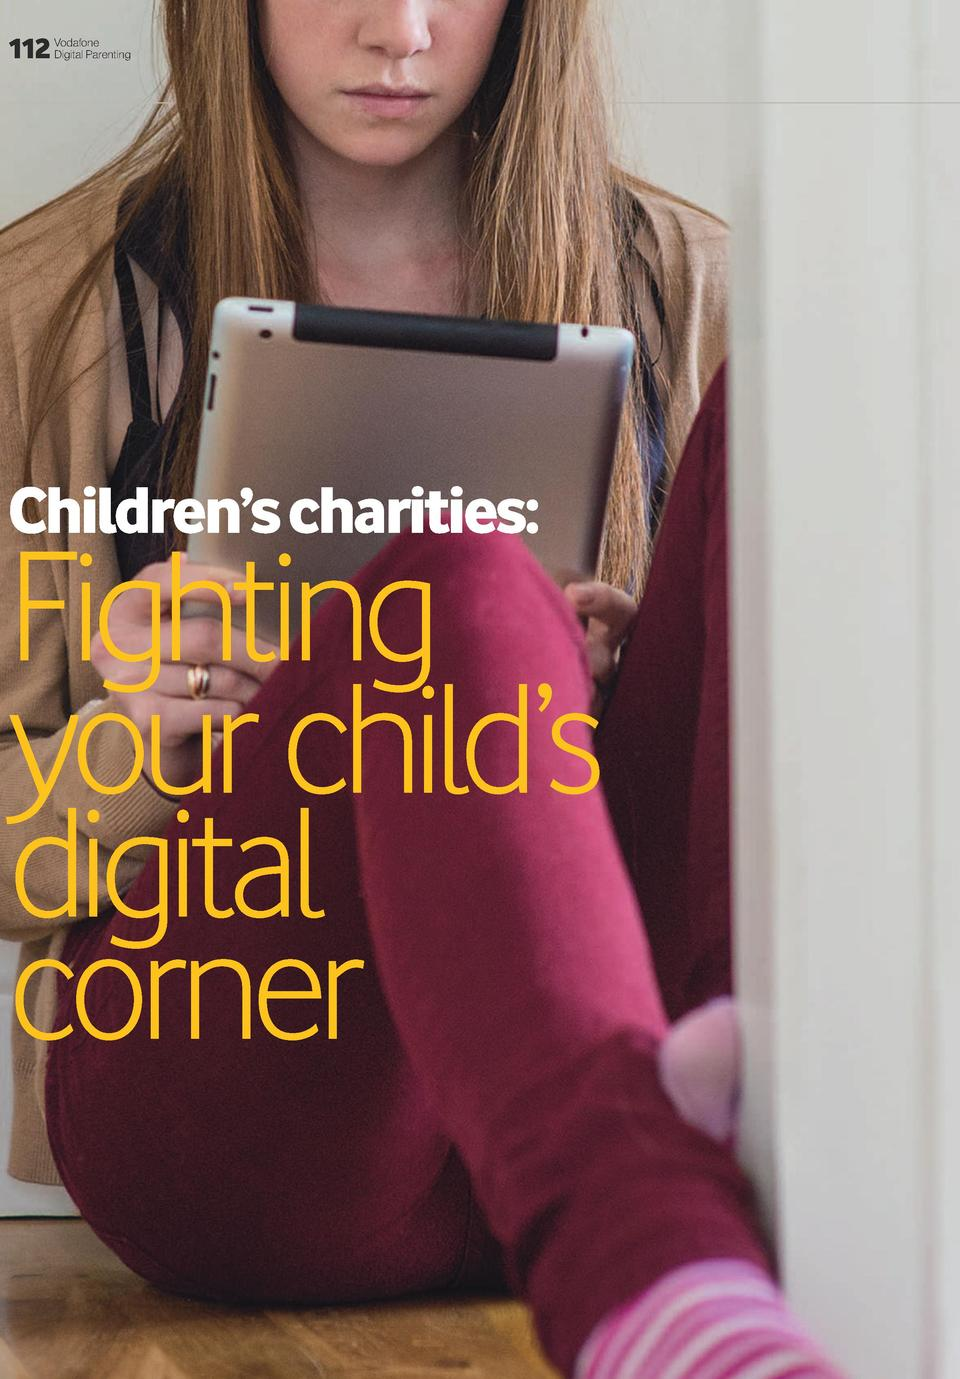 112  Vodafone Digital Parenting  Children   s charities   Fighting your child   s digital corner